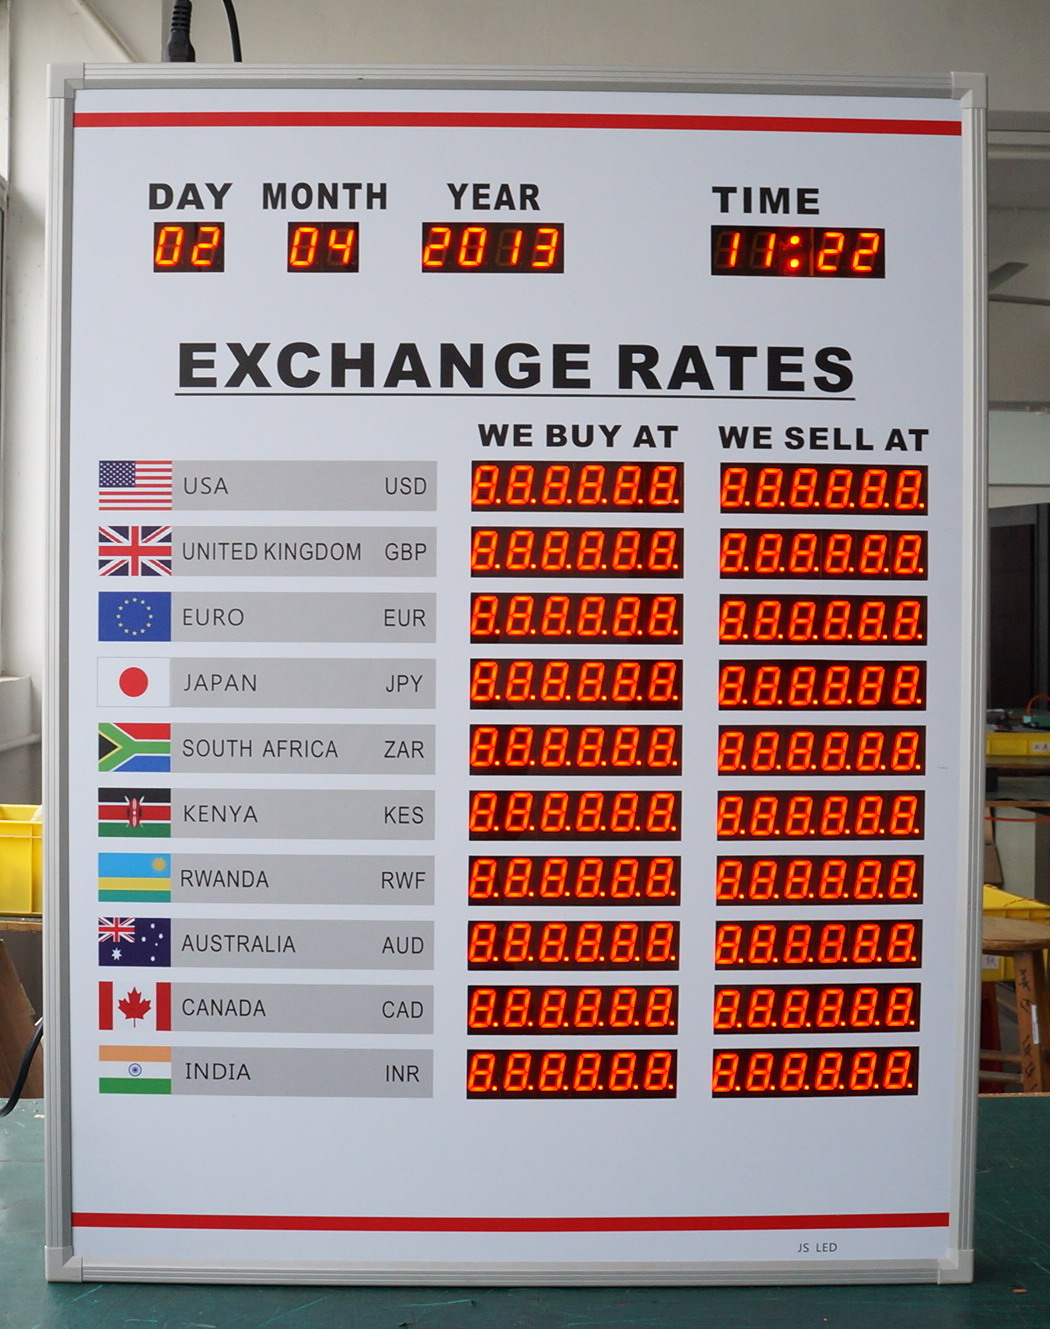 BTR-845H65L-2 BABBITT 10 Rows and 2 Columns Currency exchange rate board display